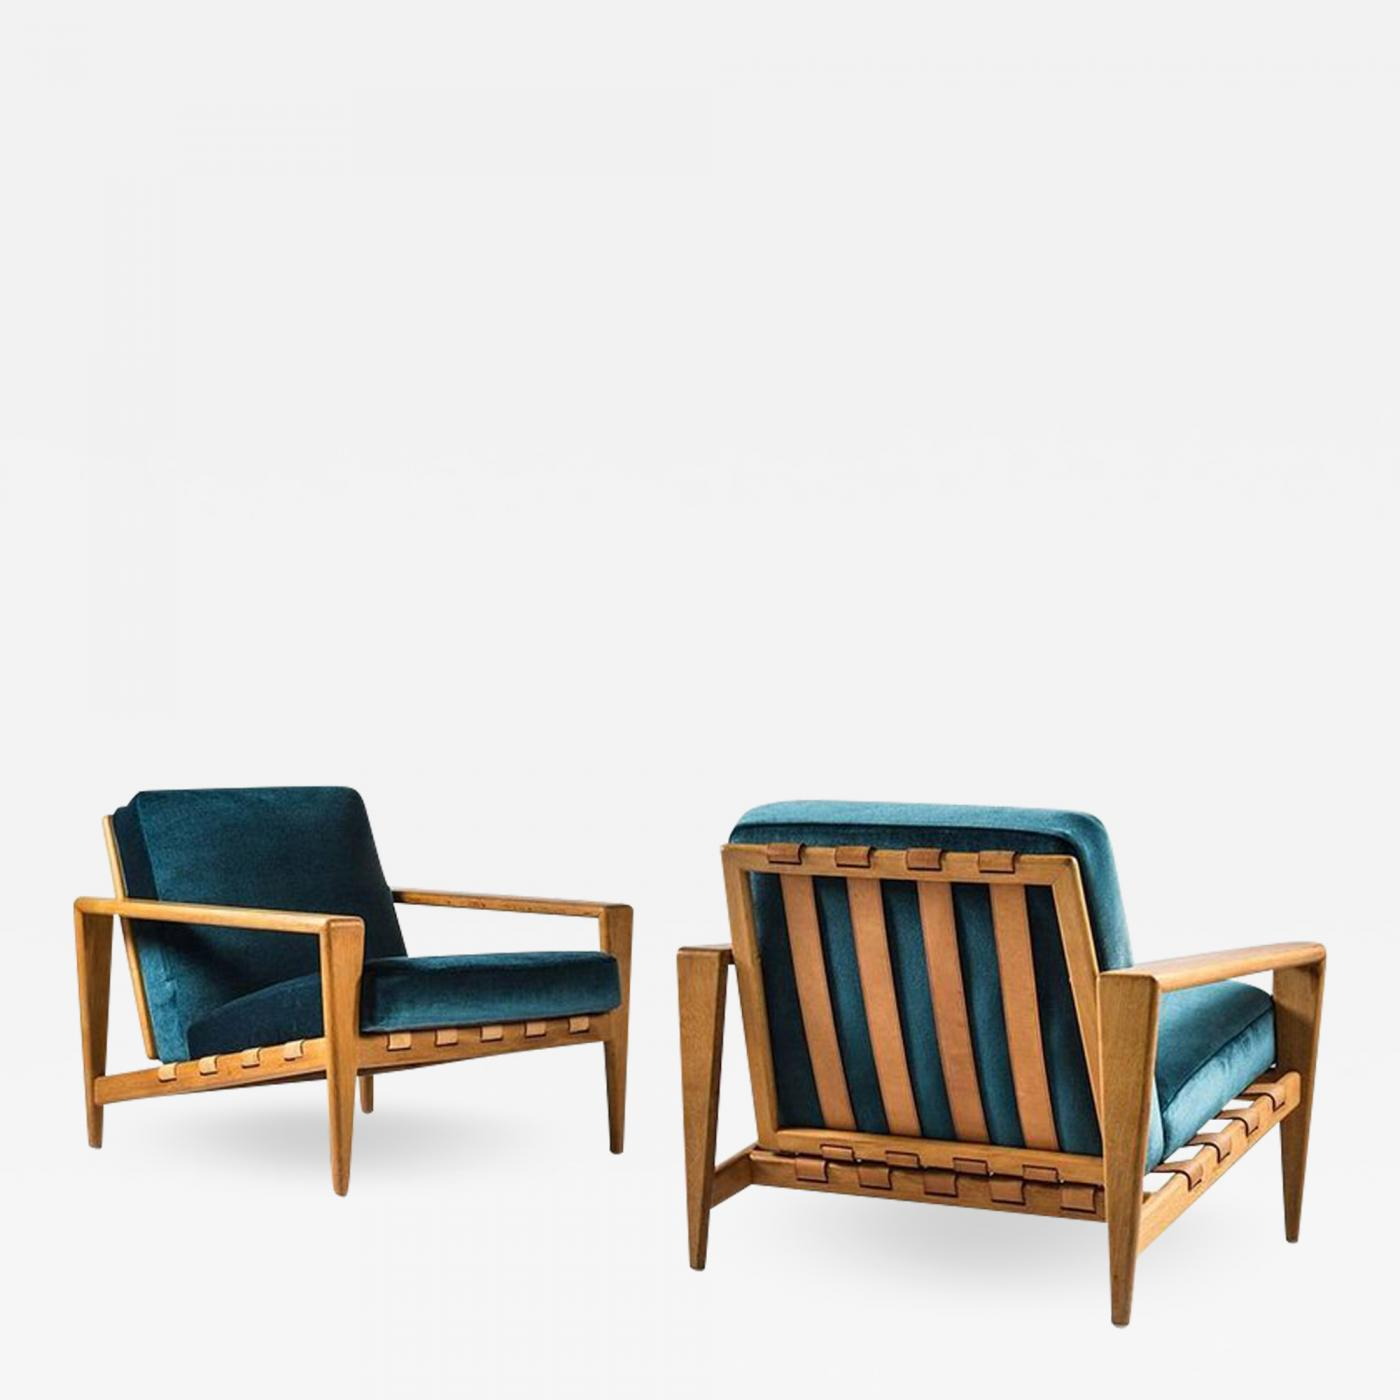 Swedish Mid Century Furniture Svante Skogh Scandinavian Mid Century Lounge Chairs